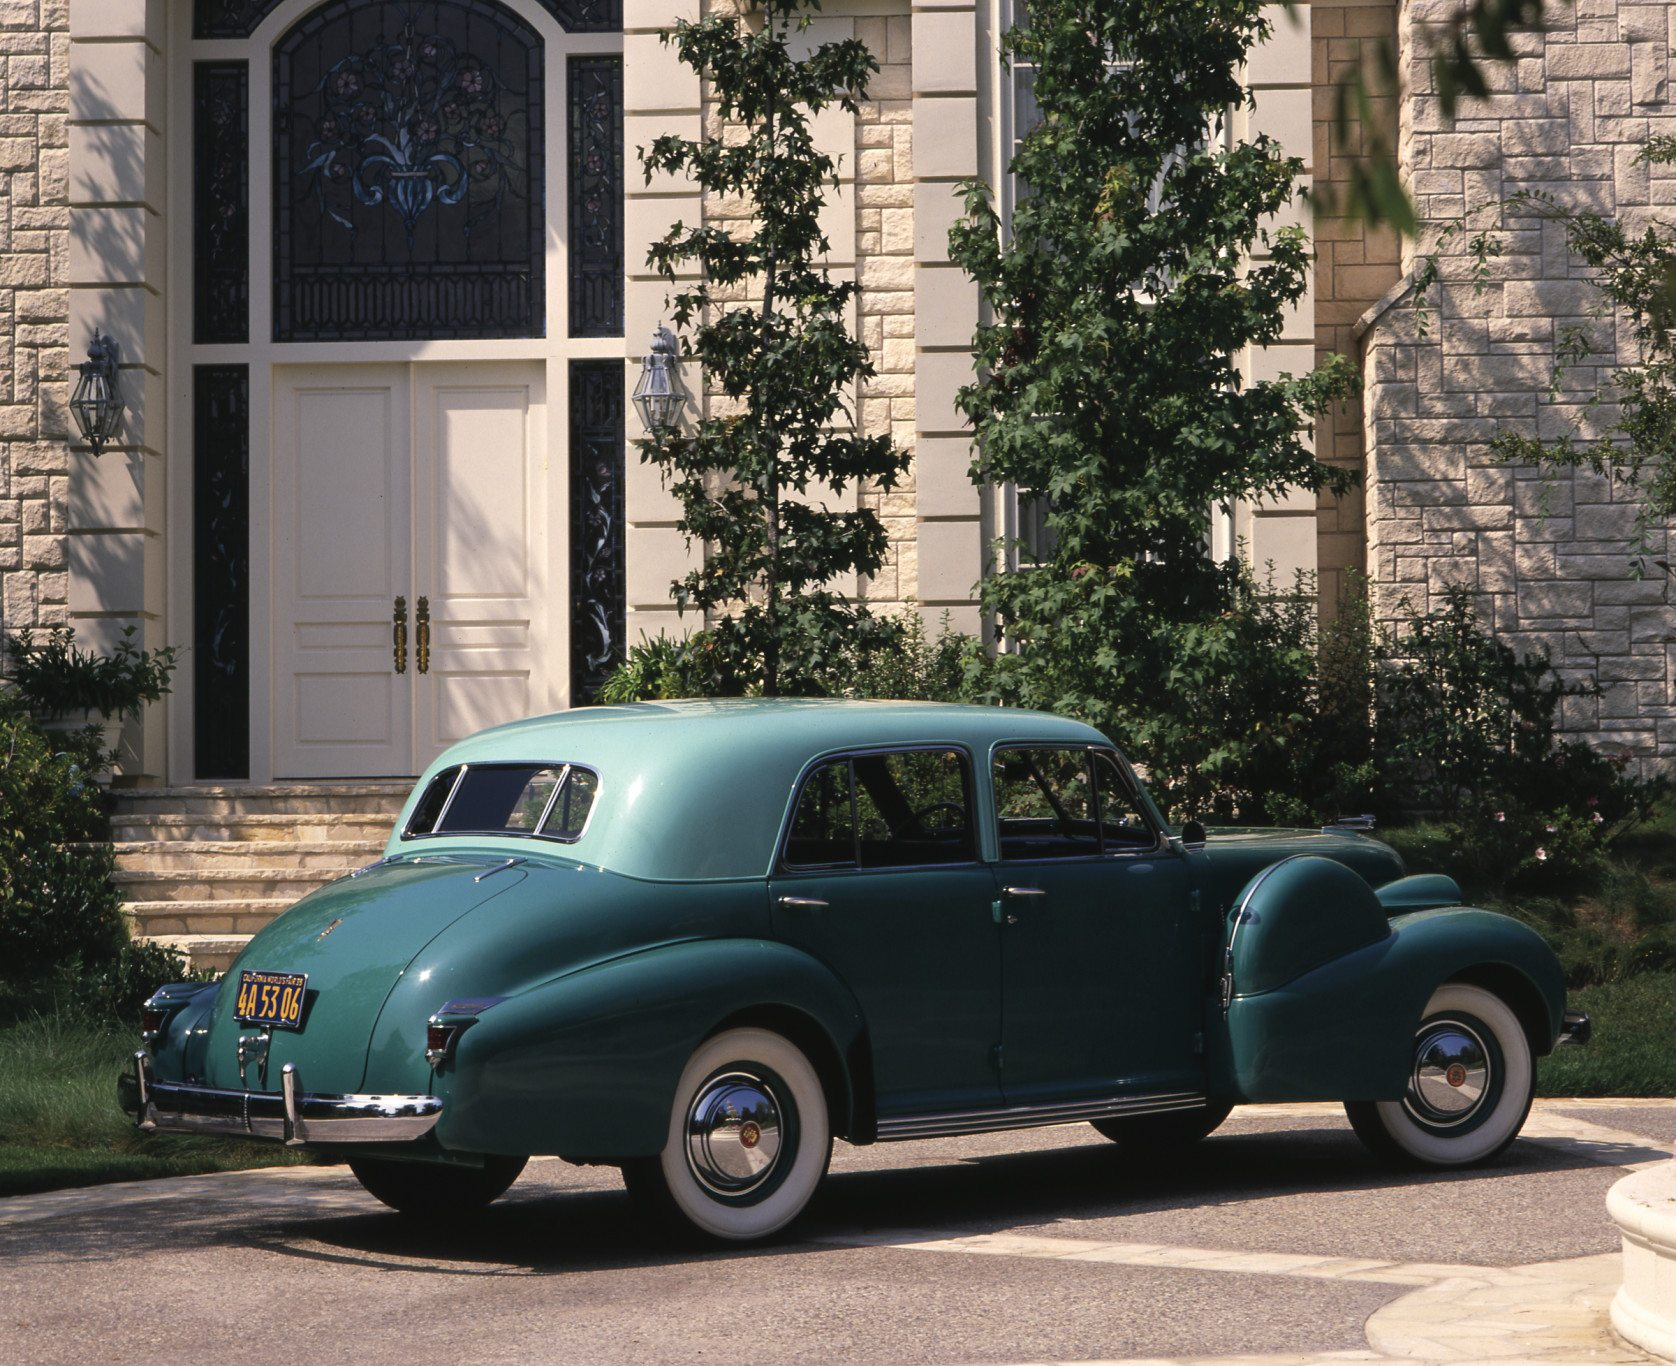 1938 Cadillac Sixty Special Rear View